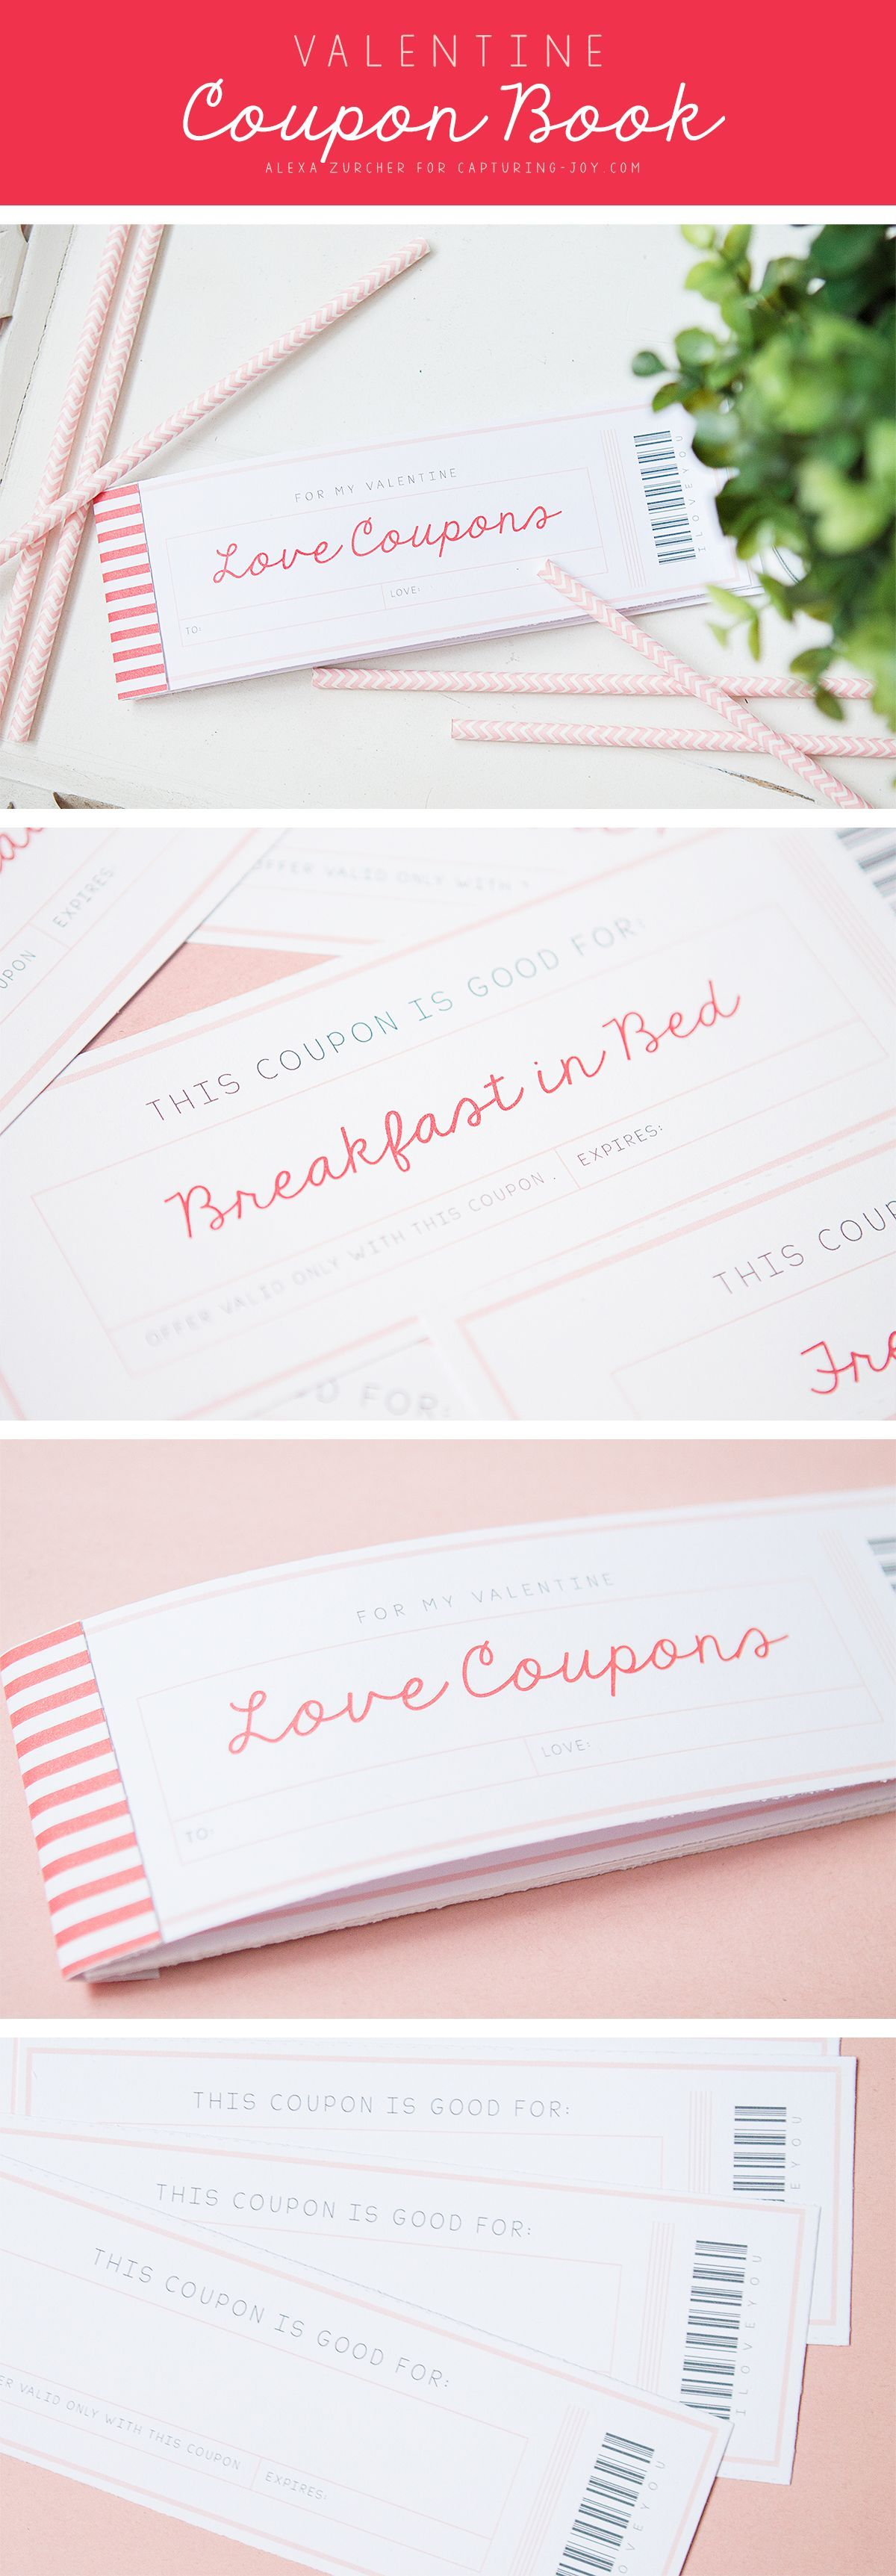 Valentine Coupon Book Printable